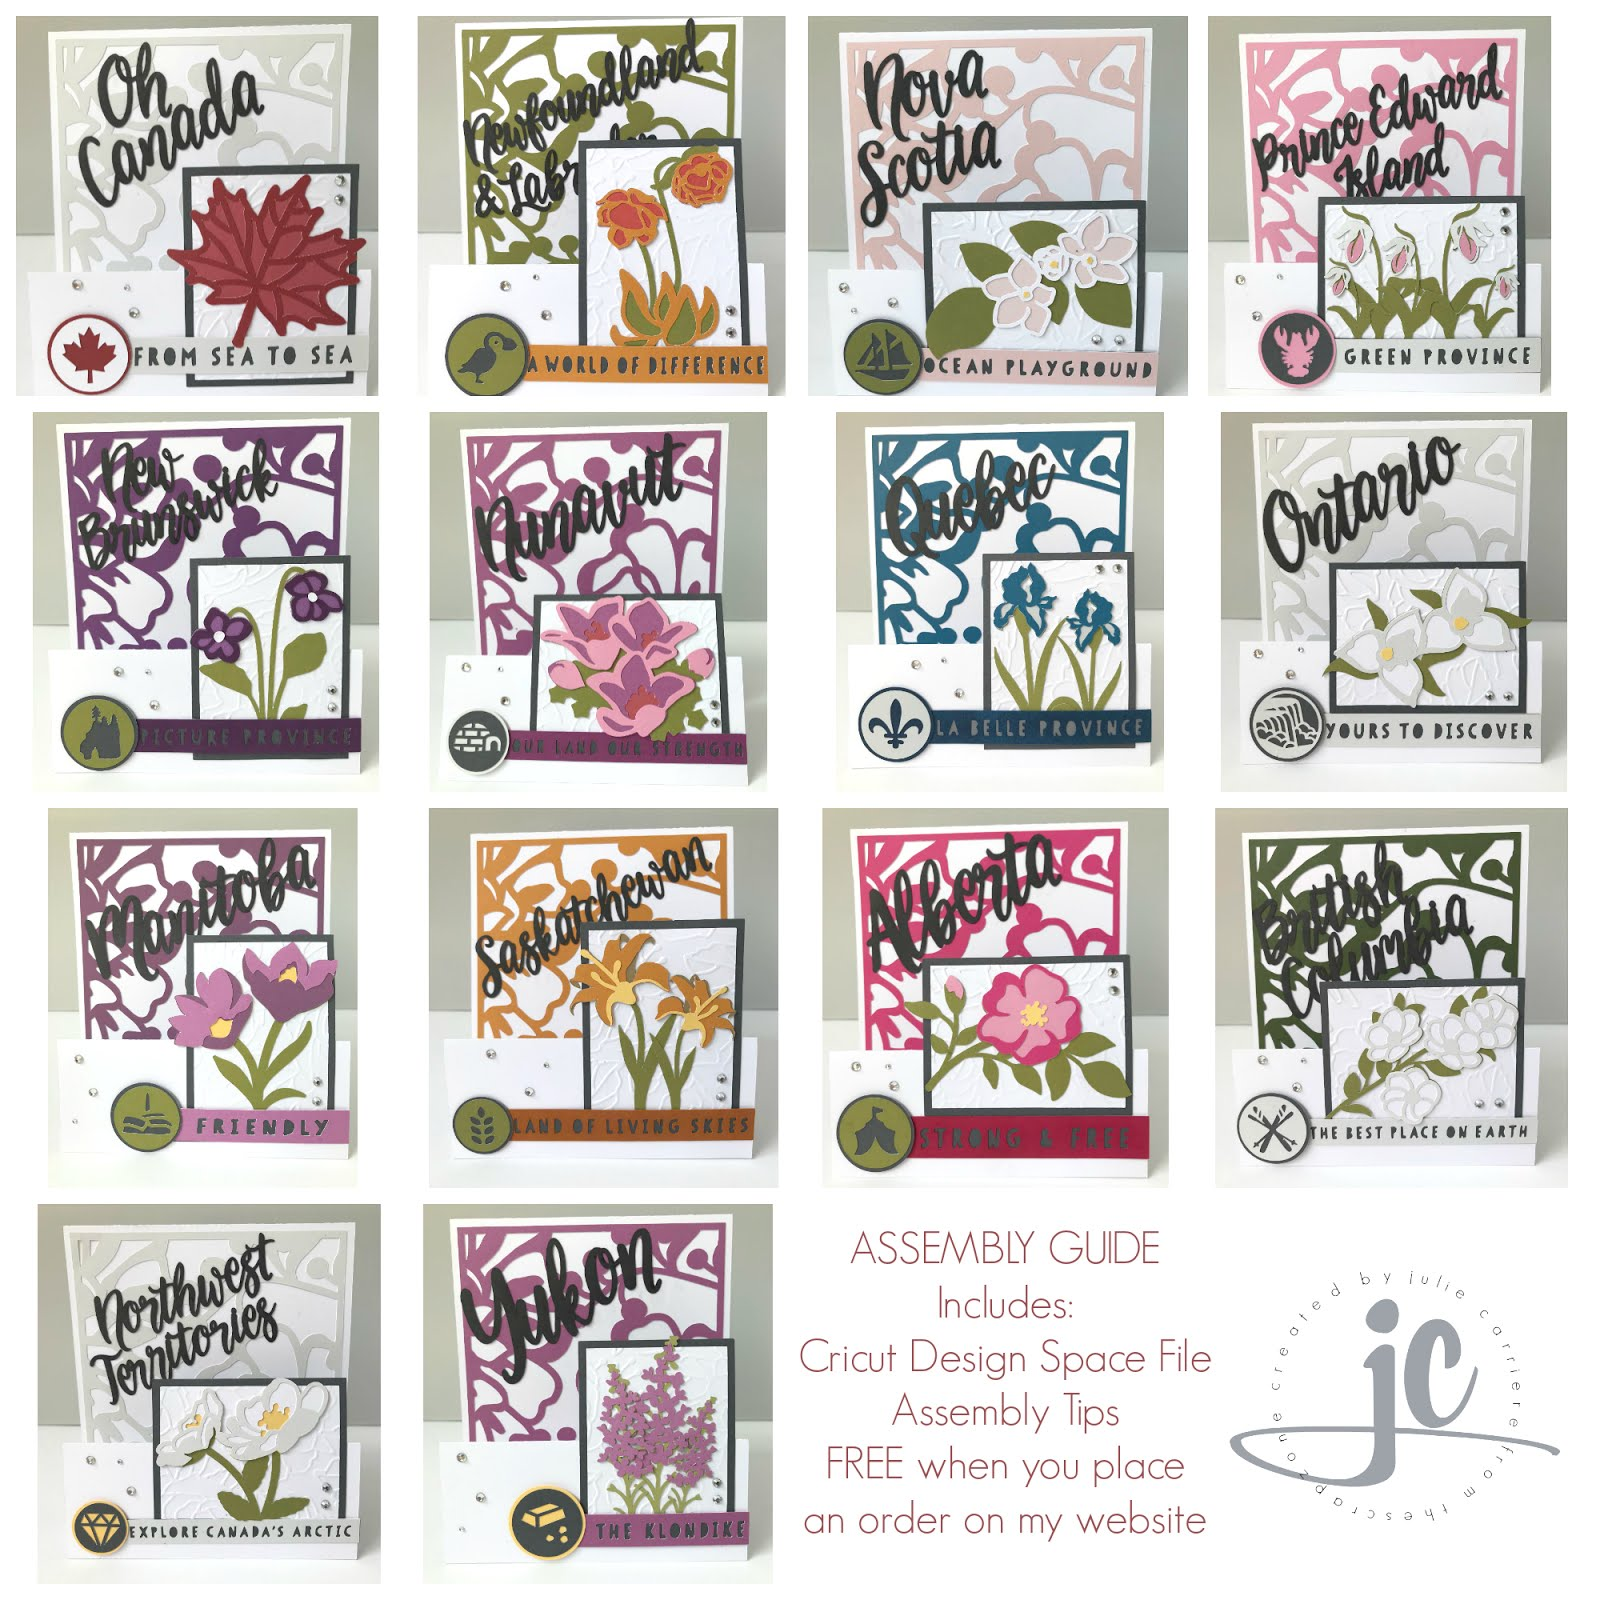 Hello Canada Cardmaking Assembly Guide Easel Cards